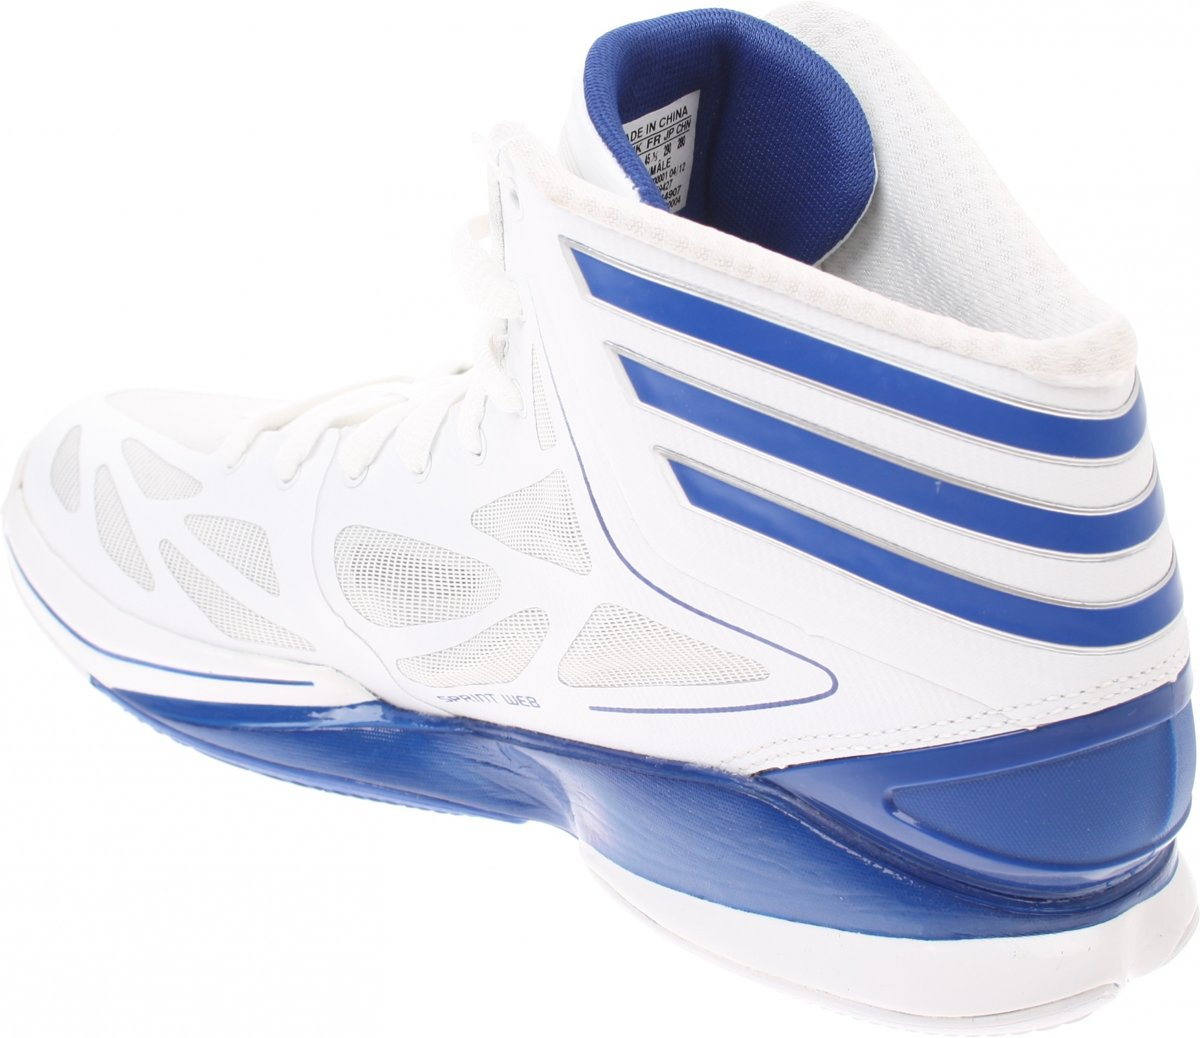 super popular 18e6f 46fd1 bol.com  Adidas Adizero Crazy Light Basketbalschoenen Wit Bl